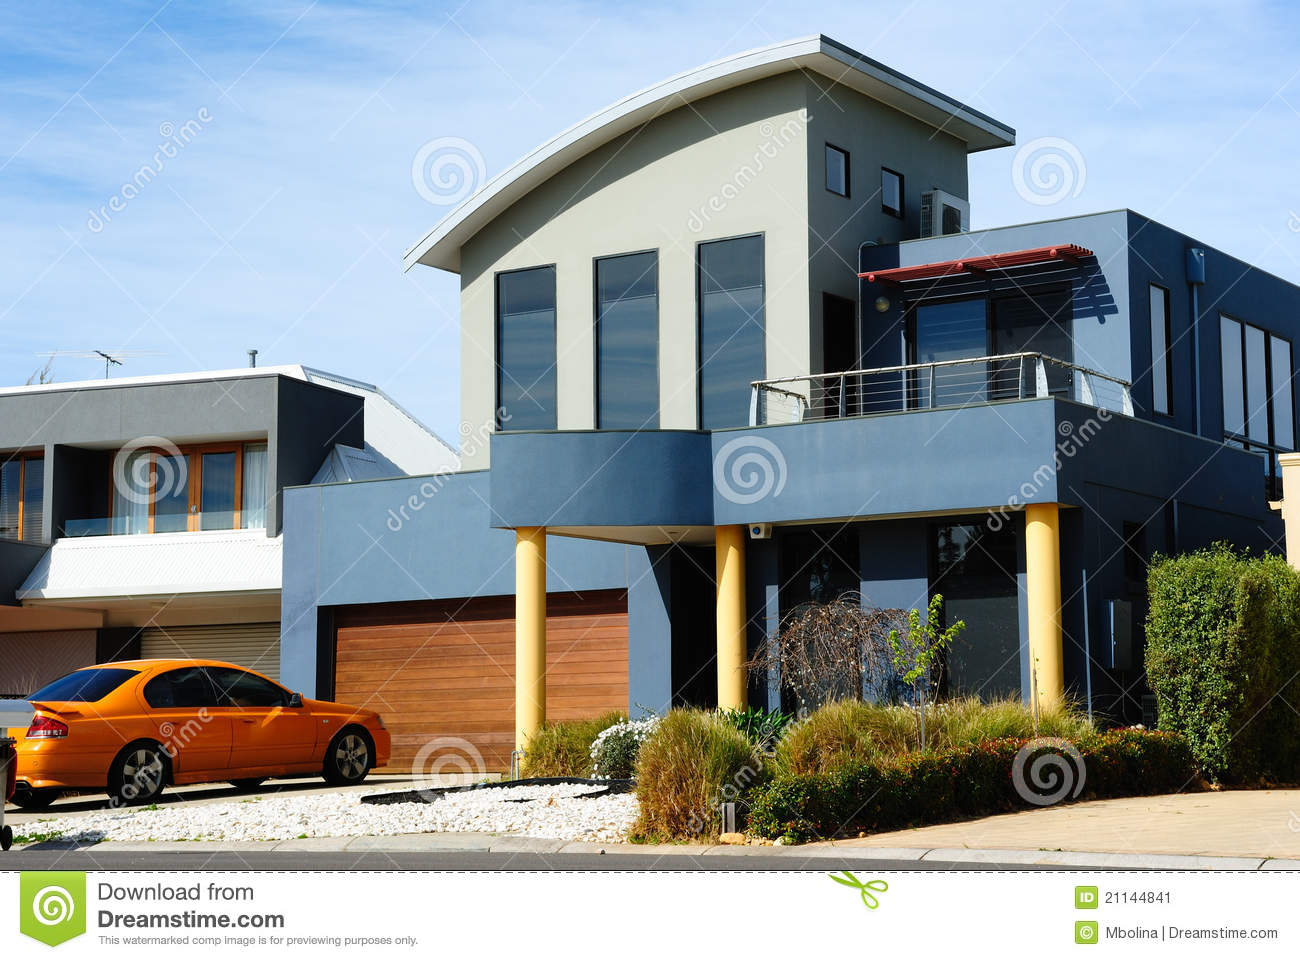 Belle maison moderne architecture neuve image stock for Plan belle maison